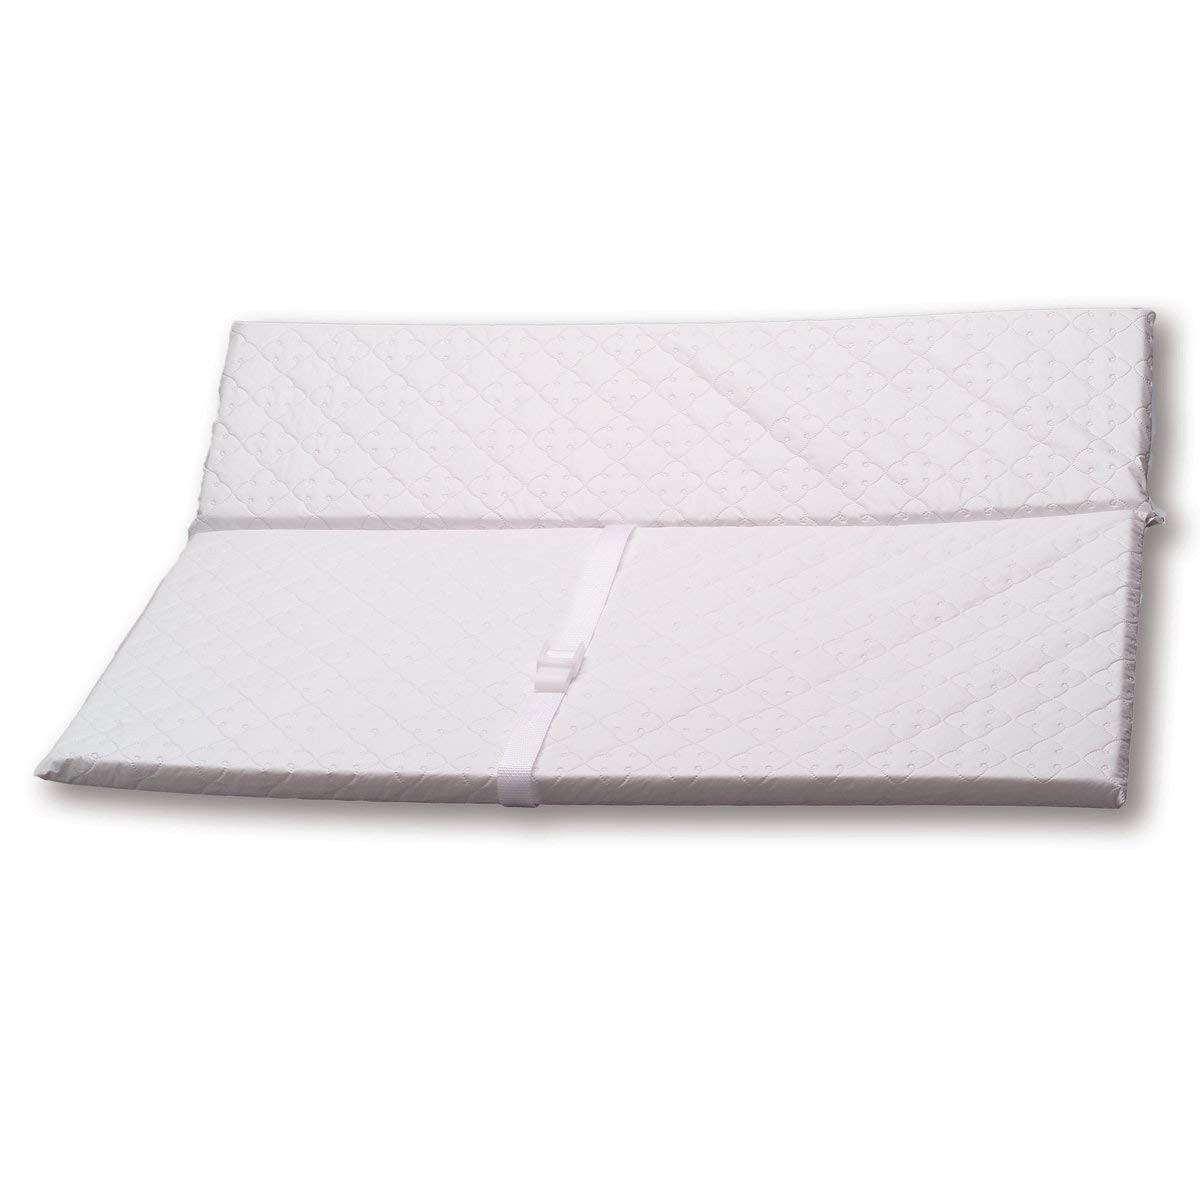 Pads and Covers-PD-FT-120-WH - image 1 of 1